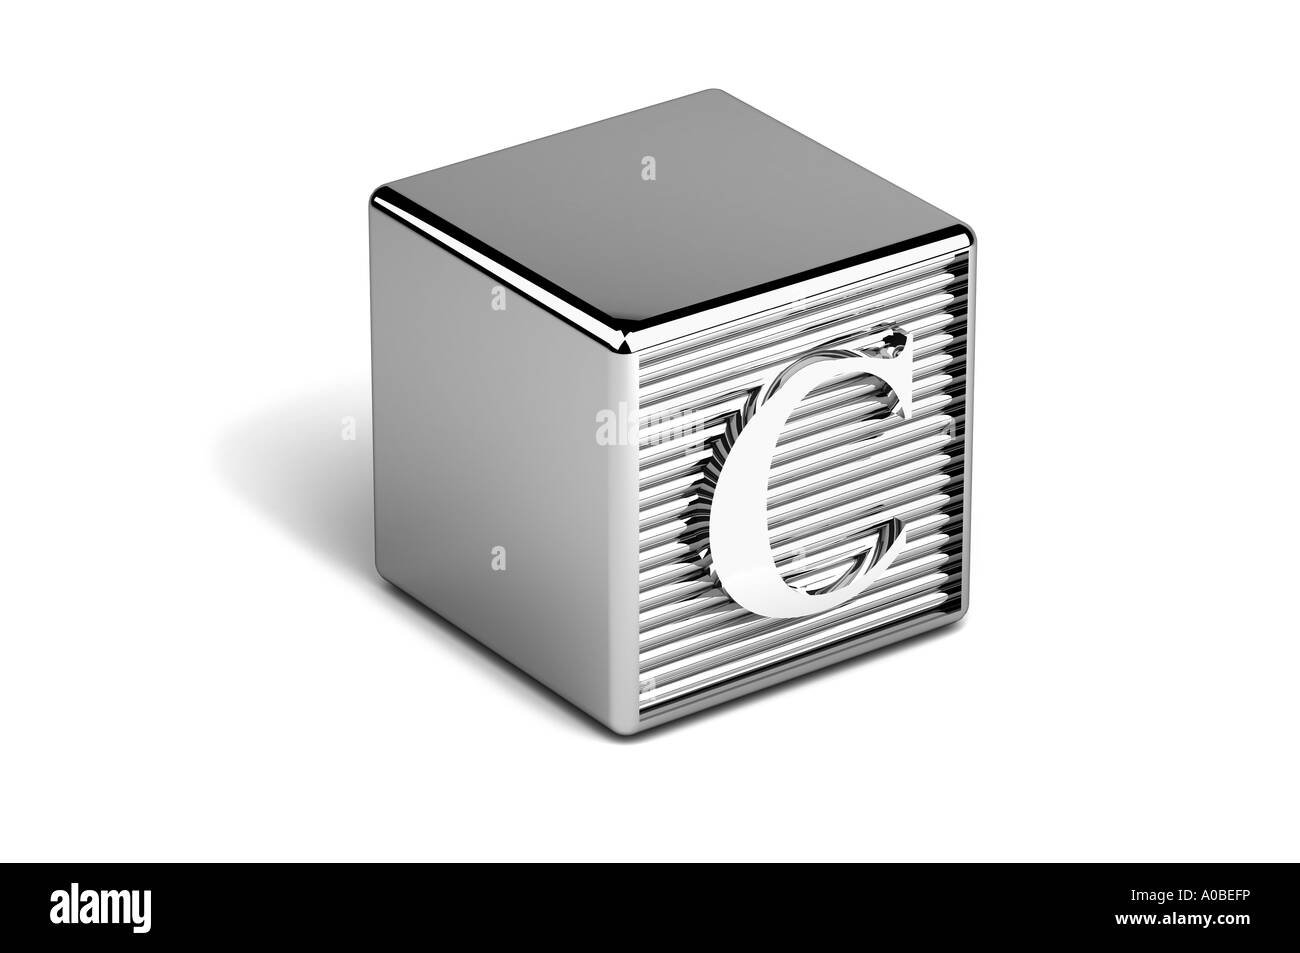 C Letter Black And White Stock Photos  Images  Alamy